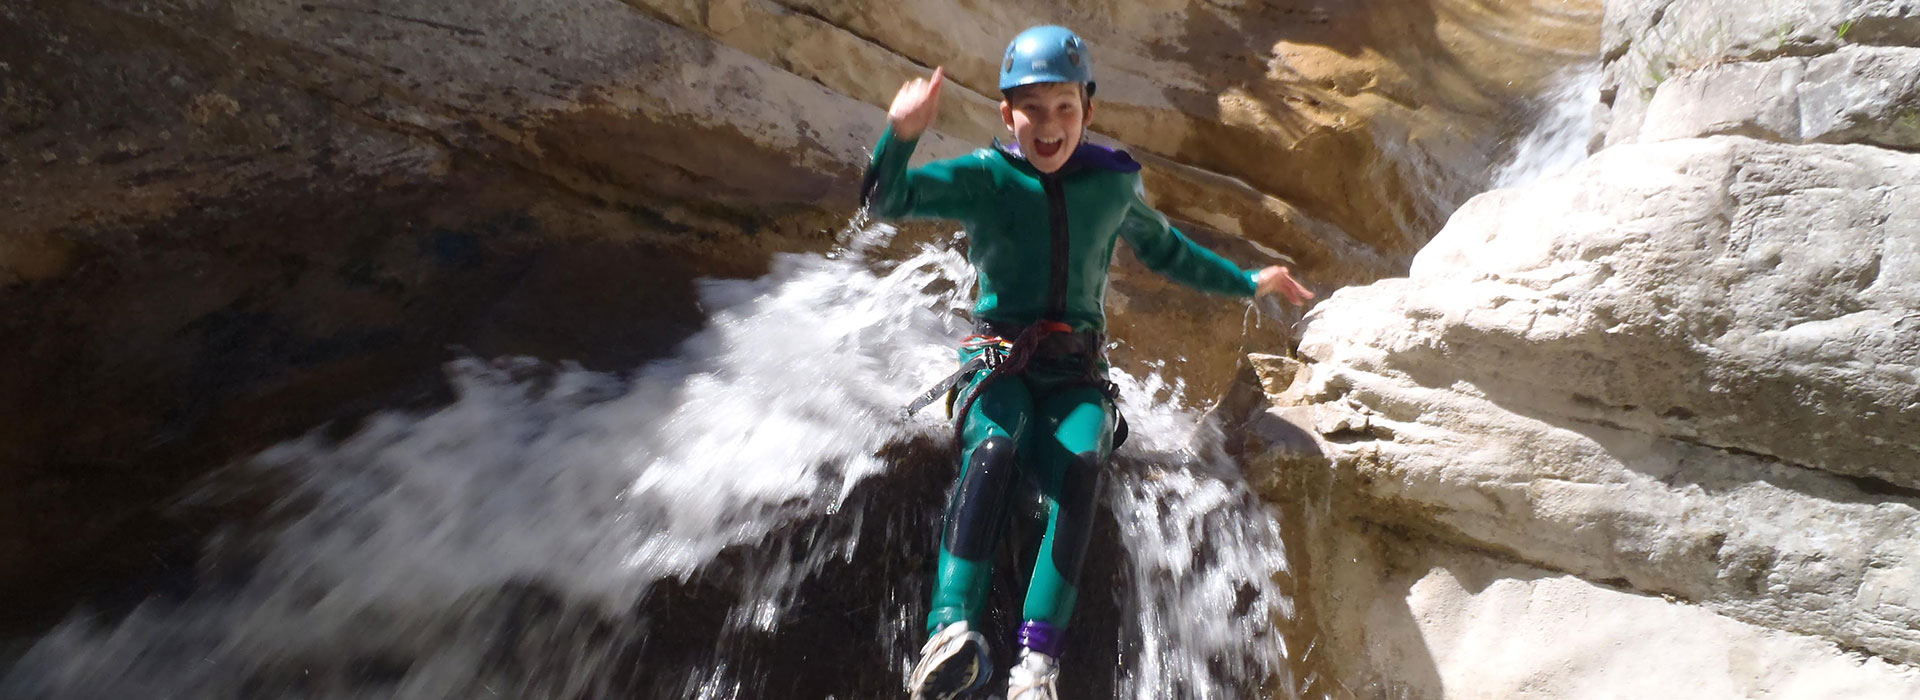 Canyoning in the southern French Alps - boy jumps over a waterfall.